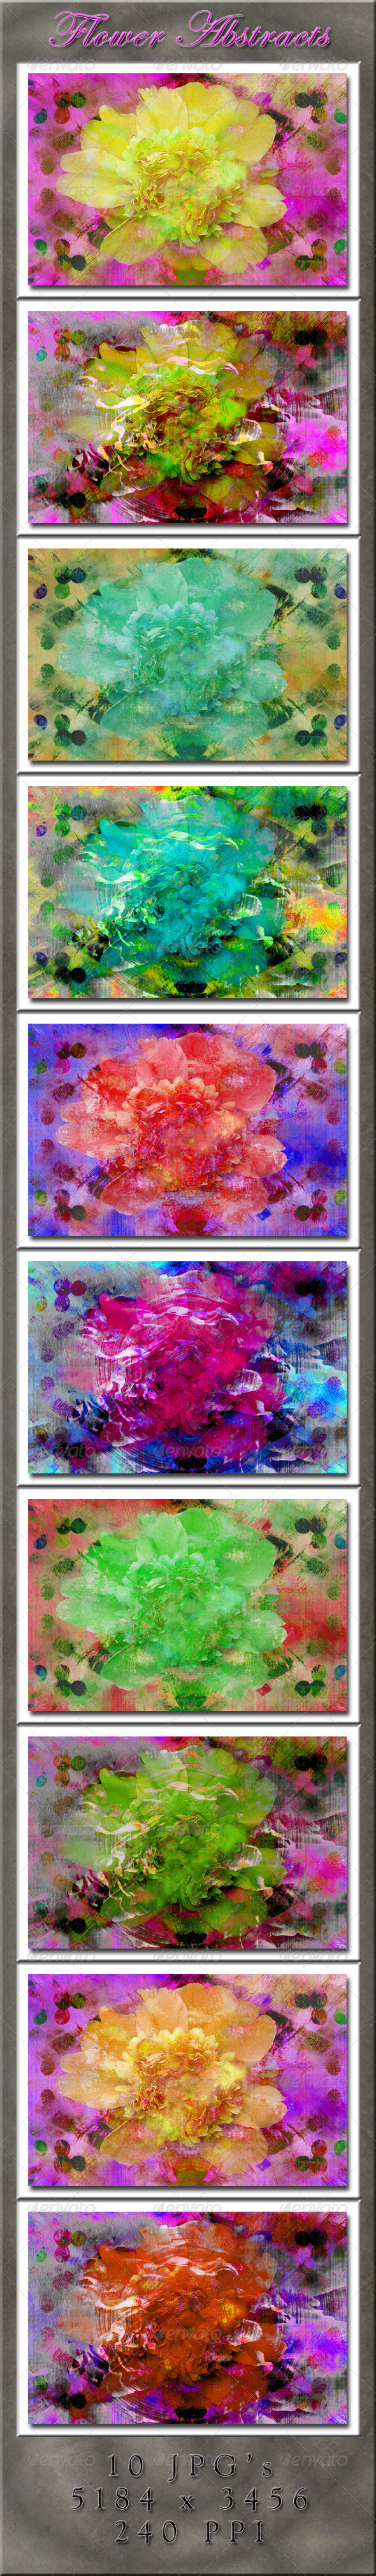 Flower Abstract Backgrounds